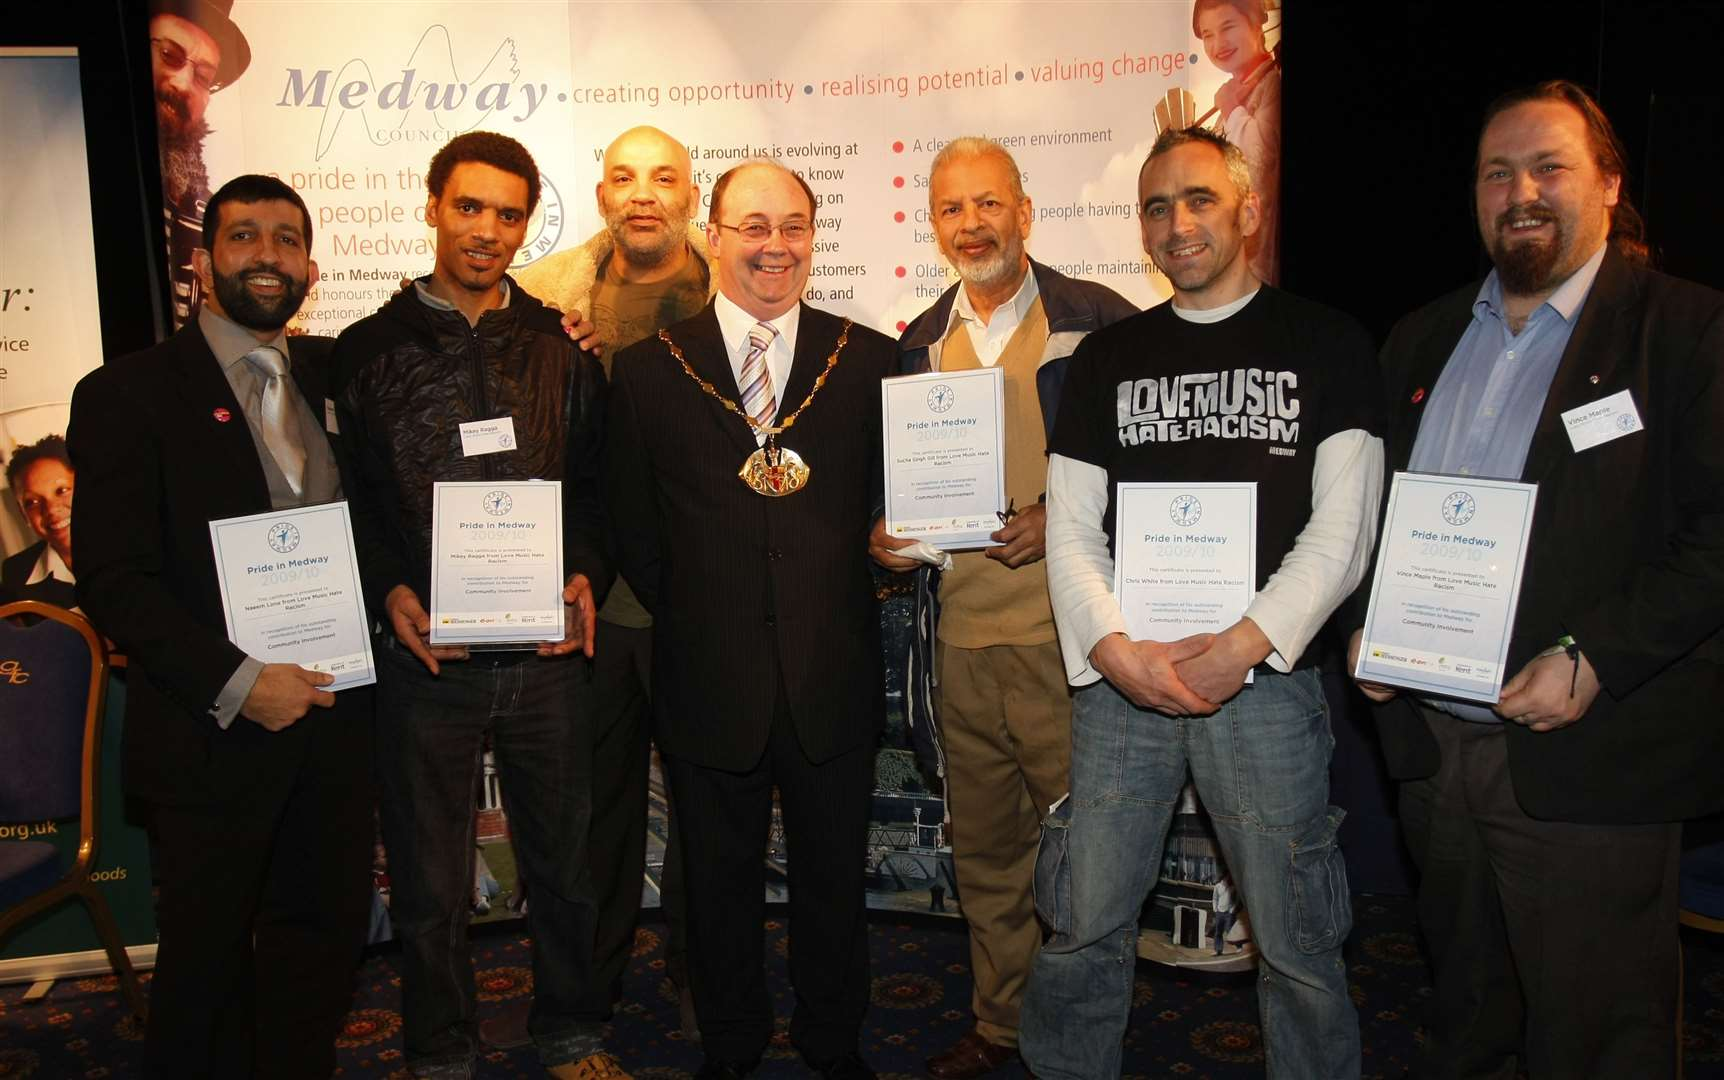 Sucha Singh Gill with members of The Love Music Hate Racism Group at a Pride in Medway awards night